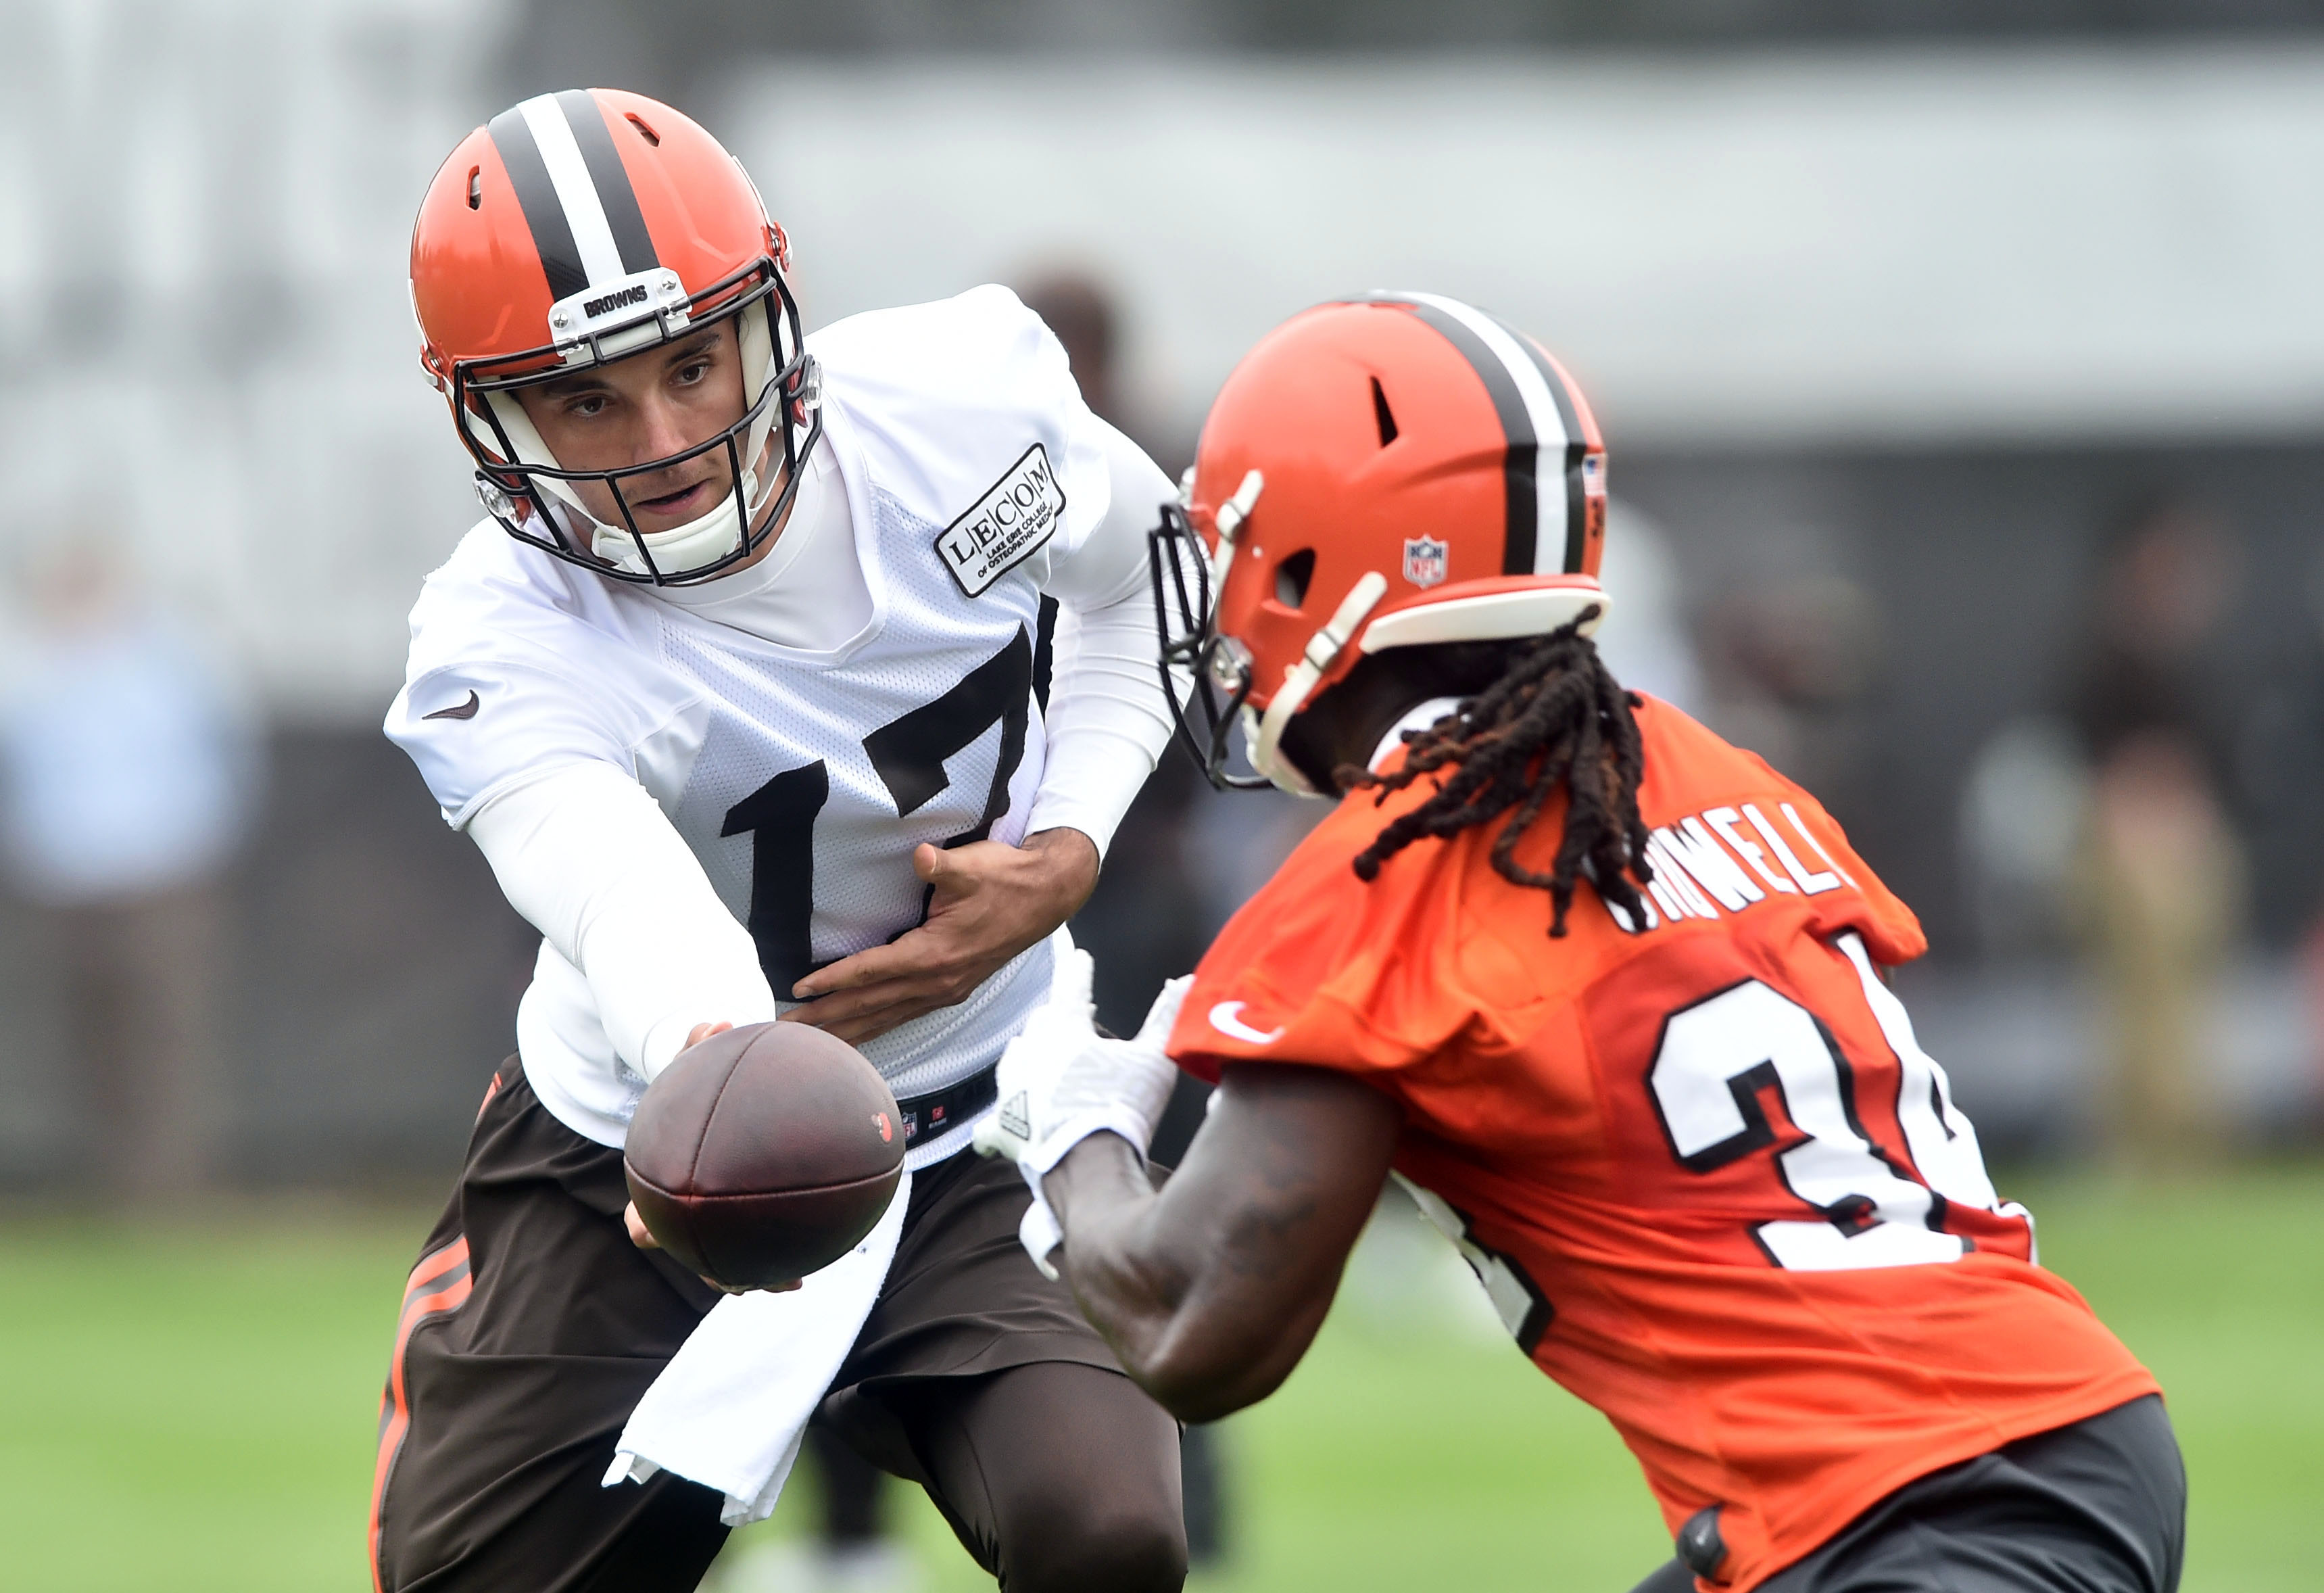 Cleveland Browns: Brock Osweiler isn't lacking confidence